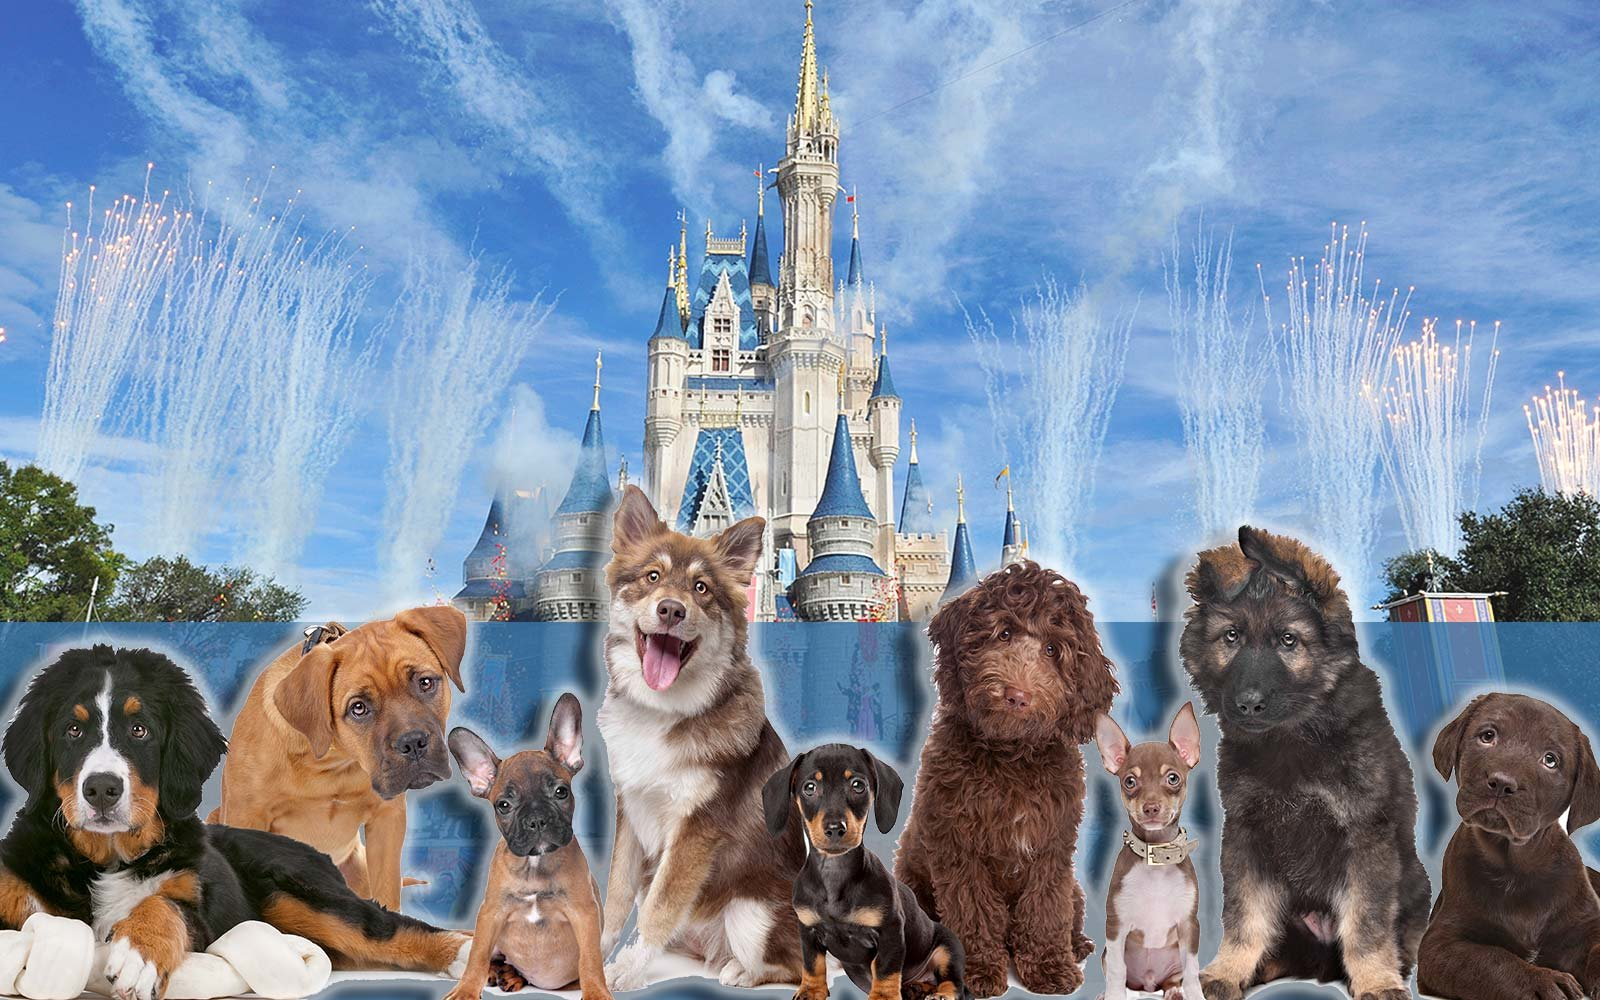 Walt Disney World to allow dogs at four of its resort hotels